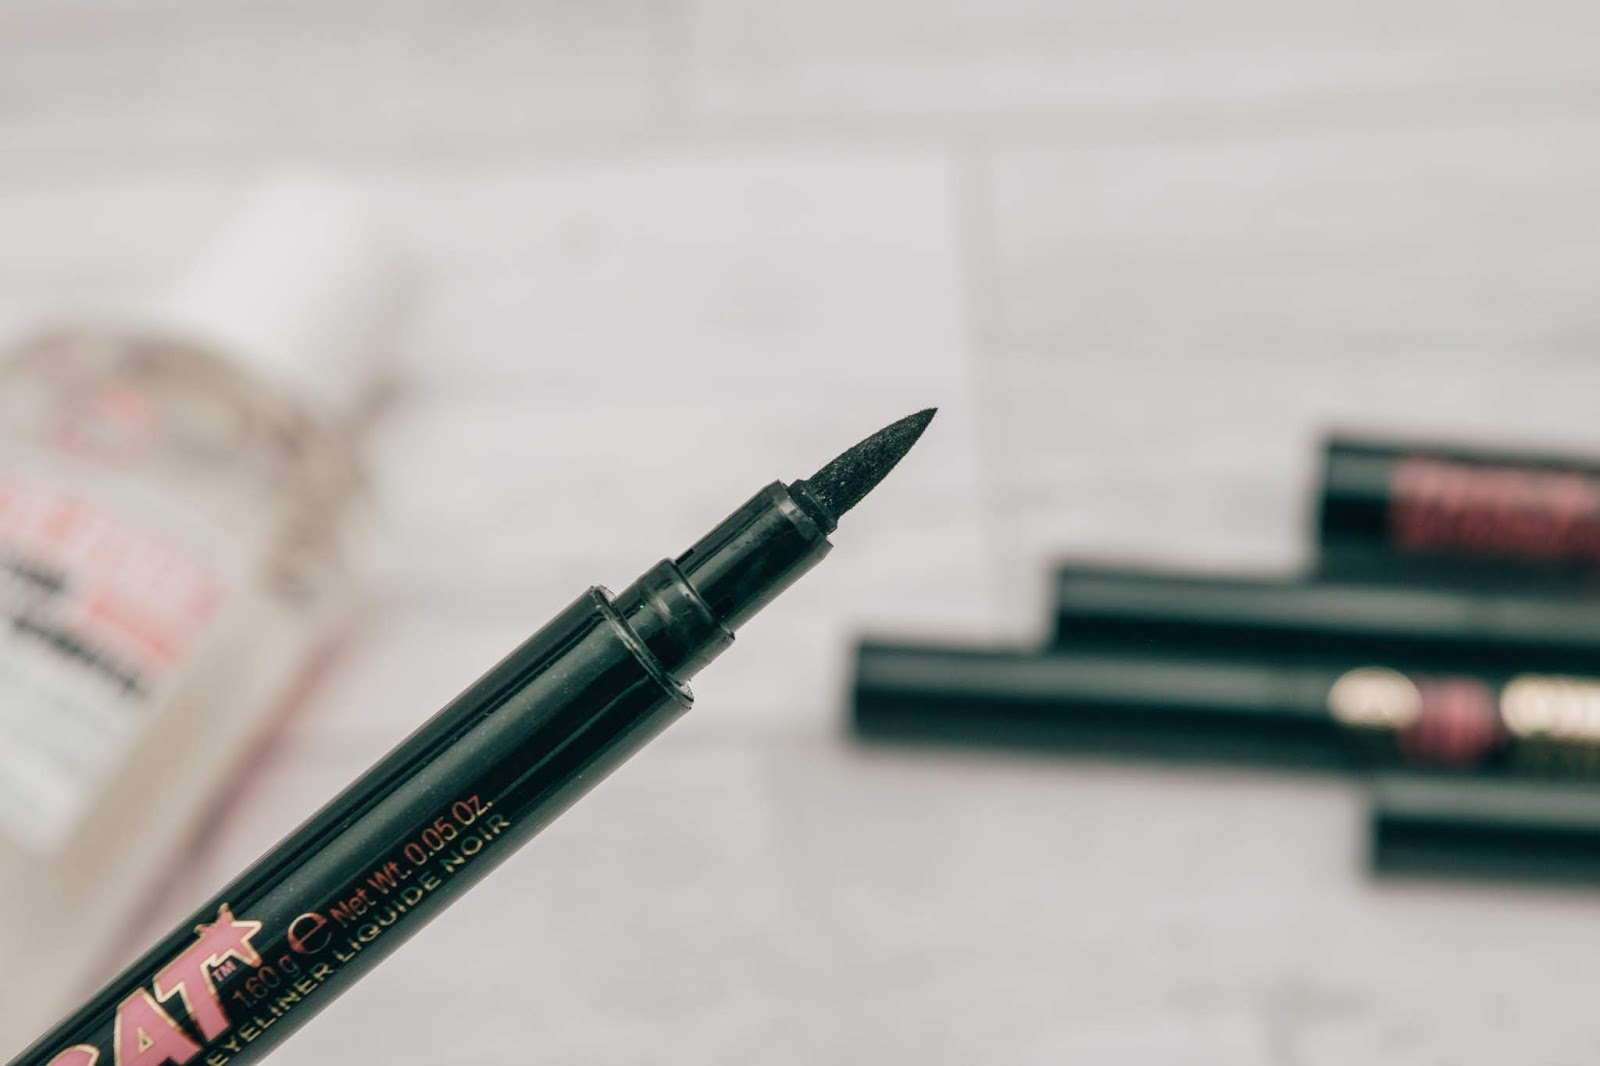 A close up of a black eyeliner pen